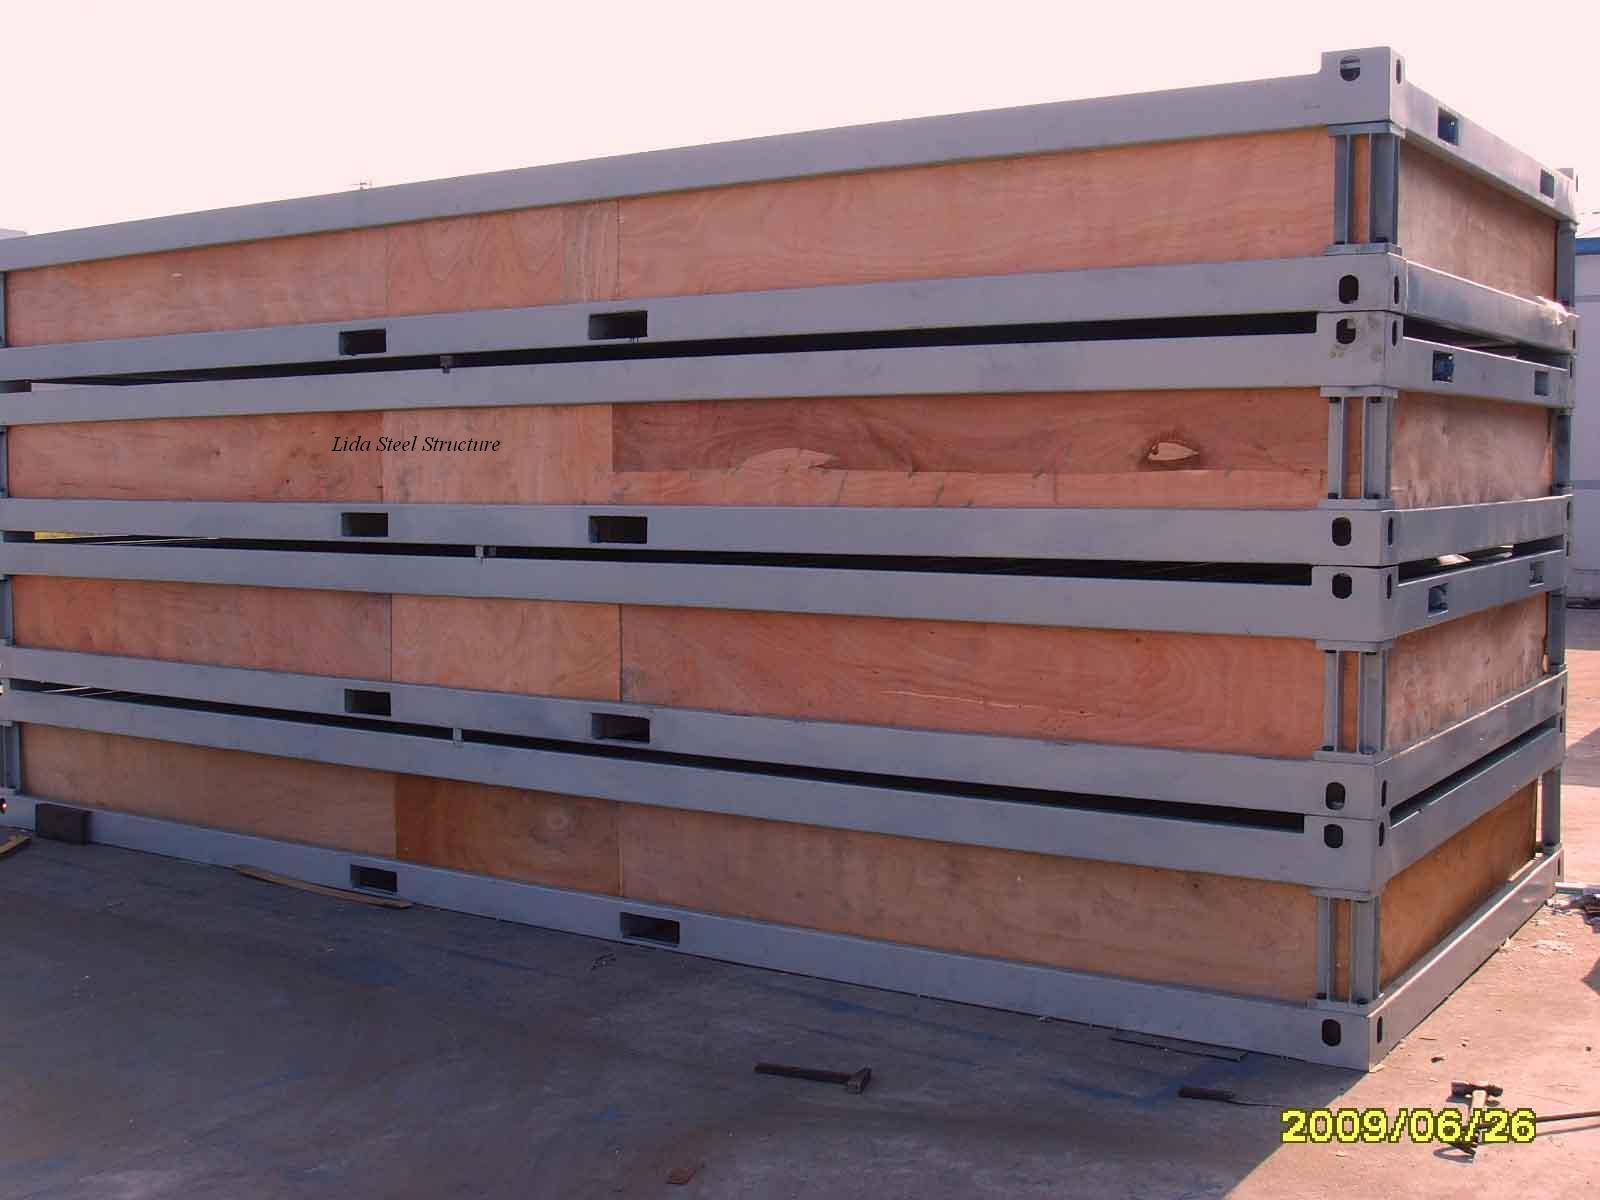 Labor Accommodation Container Portacabin Portable House in Qatar (LD002)